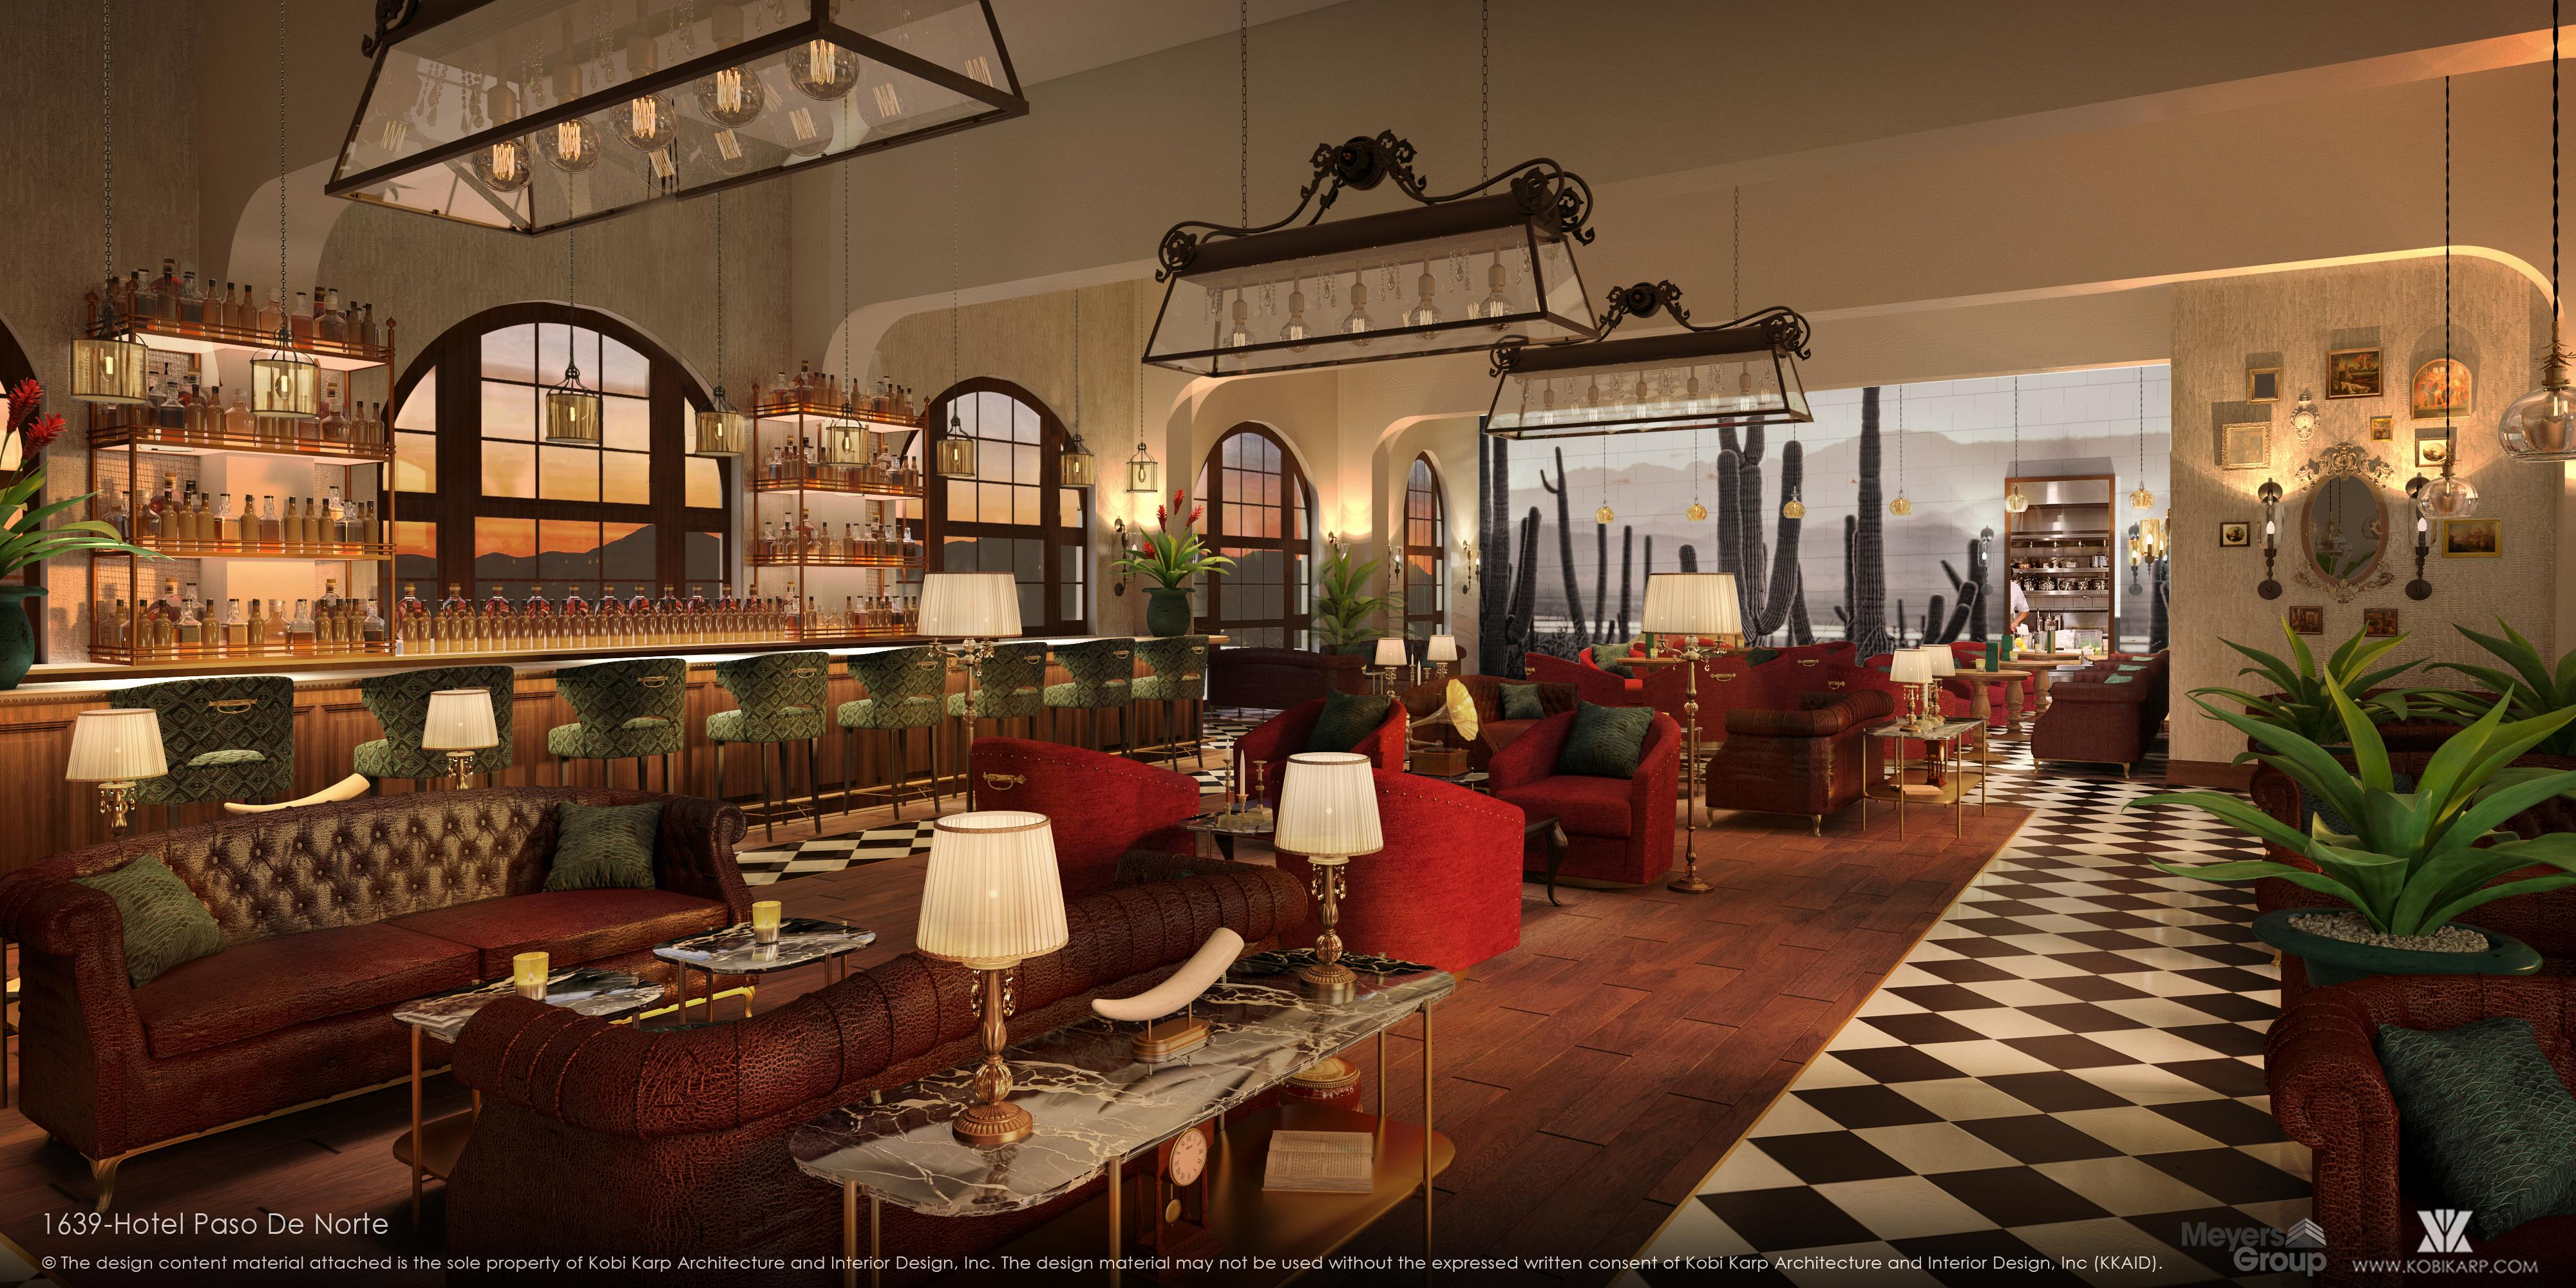 Hotel Paso Del Norte renderings (Credit: Kobi Karp Architecture and Interior Design, Inc.)